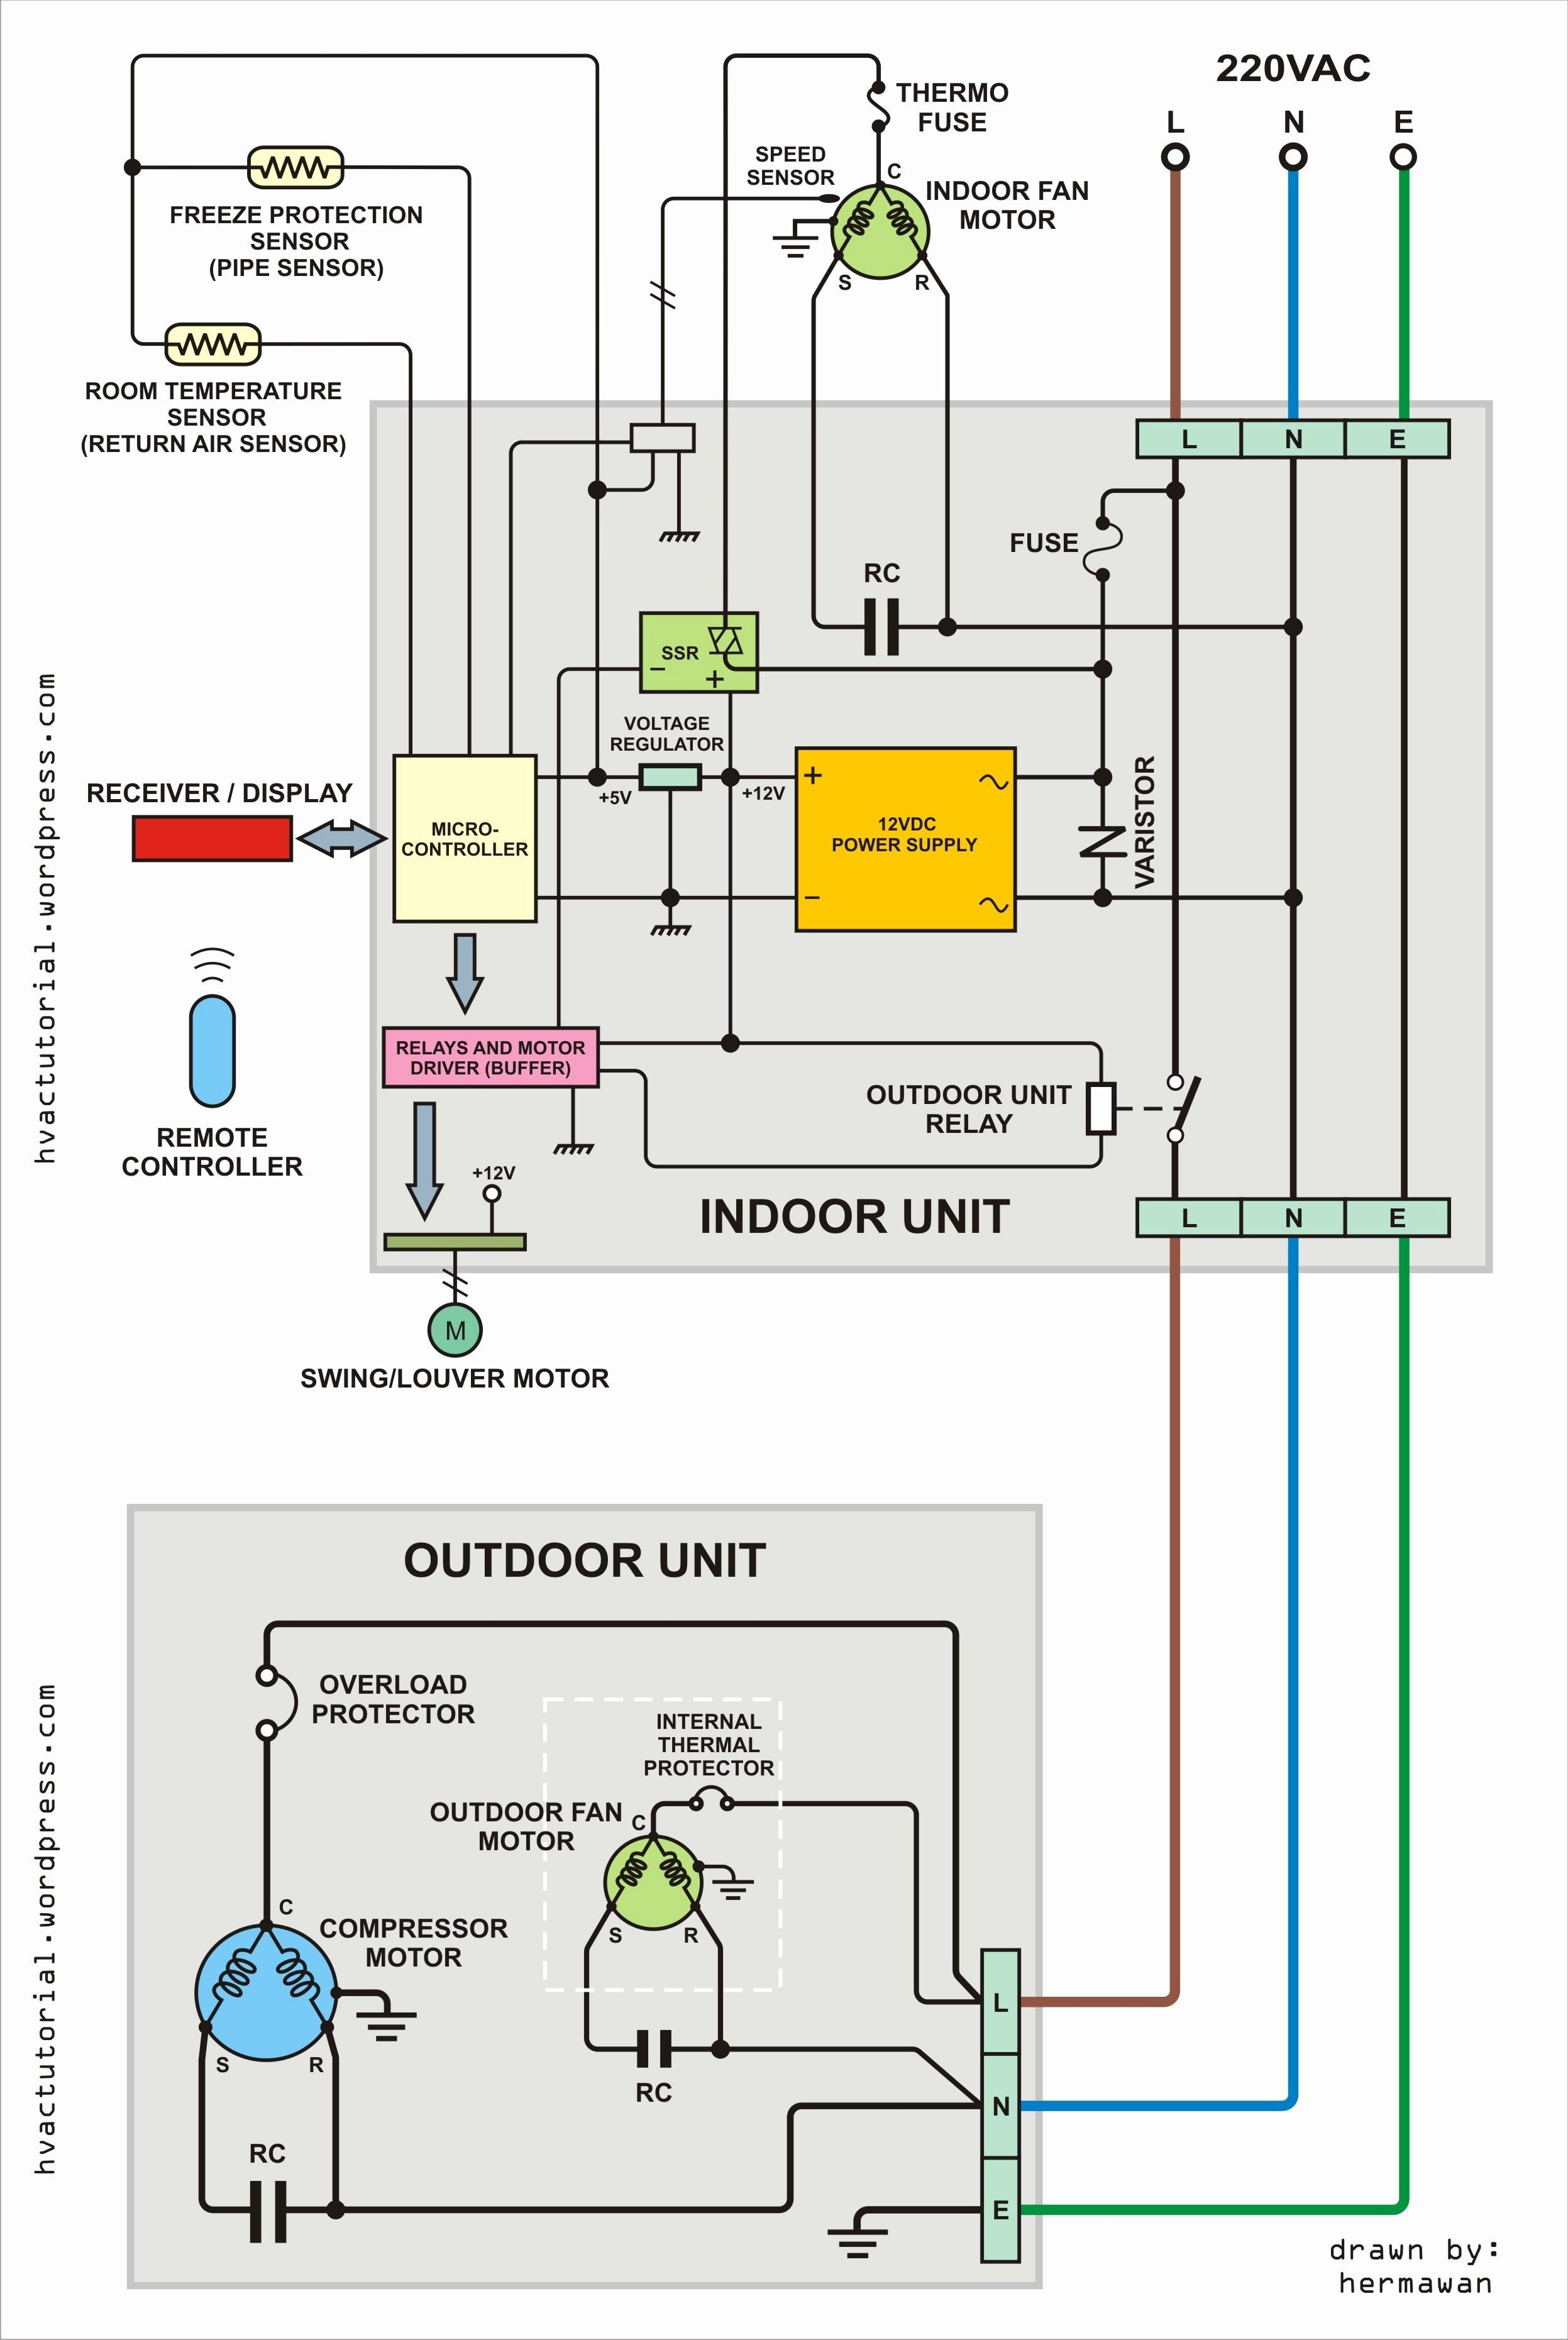 Jeep Ac Electrical Wiring | Wiring Diagram Jeep Ac Wiring Diagram on jeep 4.0 engine wiring diagram, jeep ac condenser replacement, jeep xj wiring diagram, jeep stereo wiring diagram, jeep jk wiring diagram, jeep tj wiring diagram, jeep cj wiring diagram,